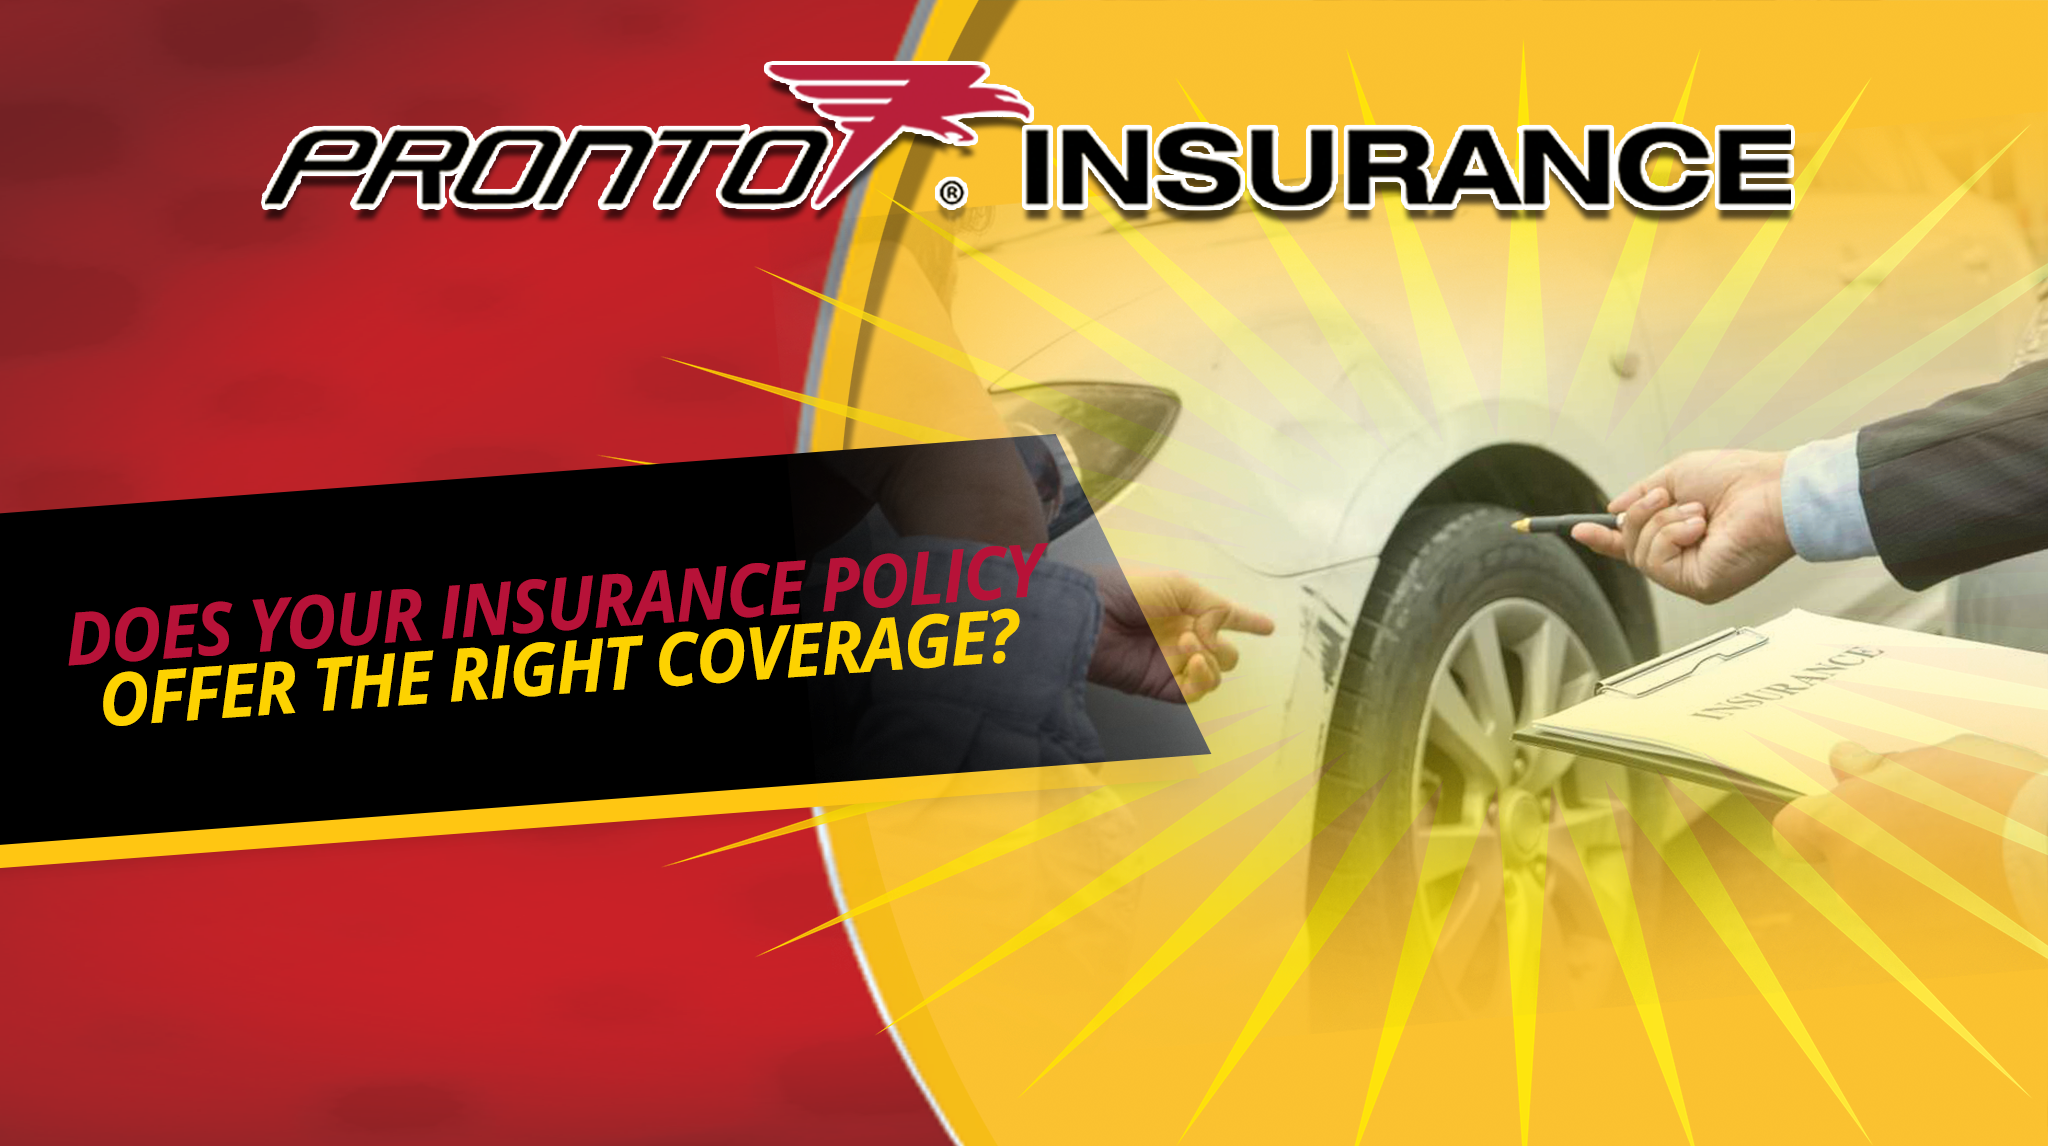 Does Your Insurance Policy Offer the Right Coverage?